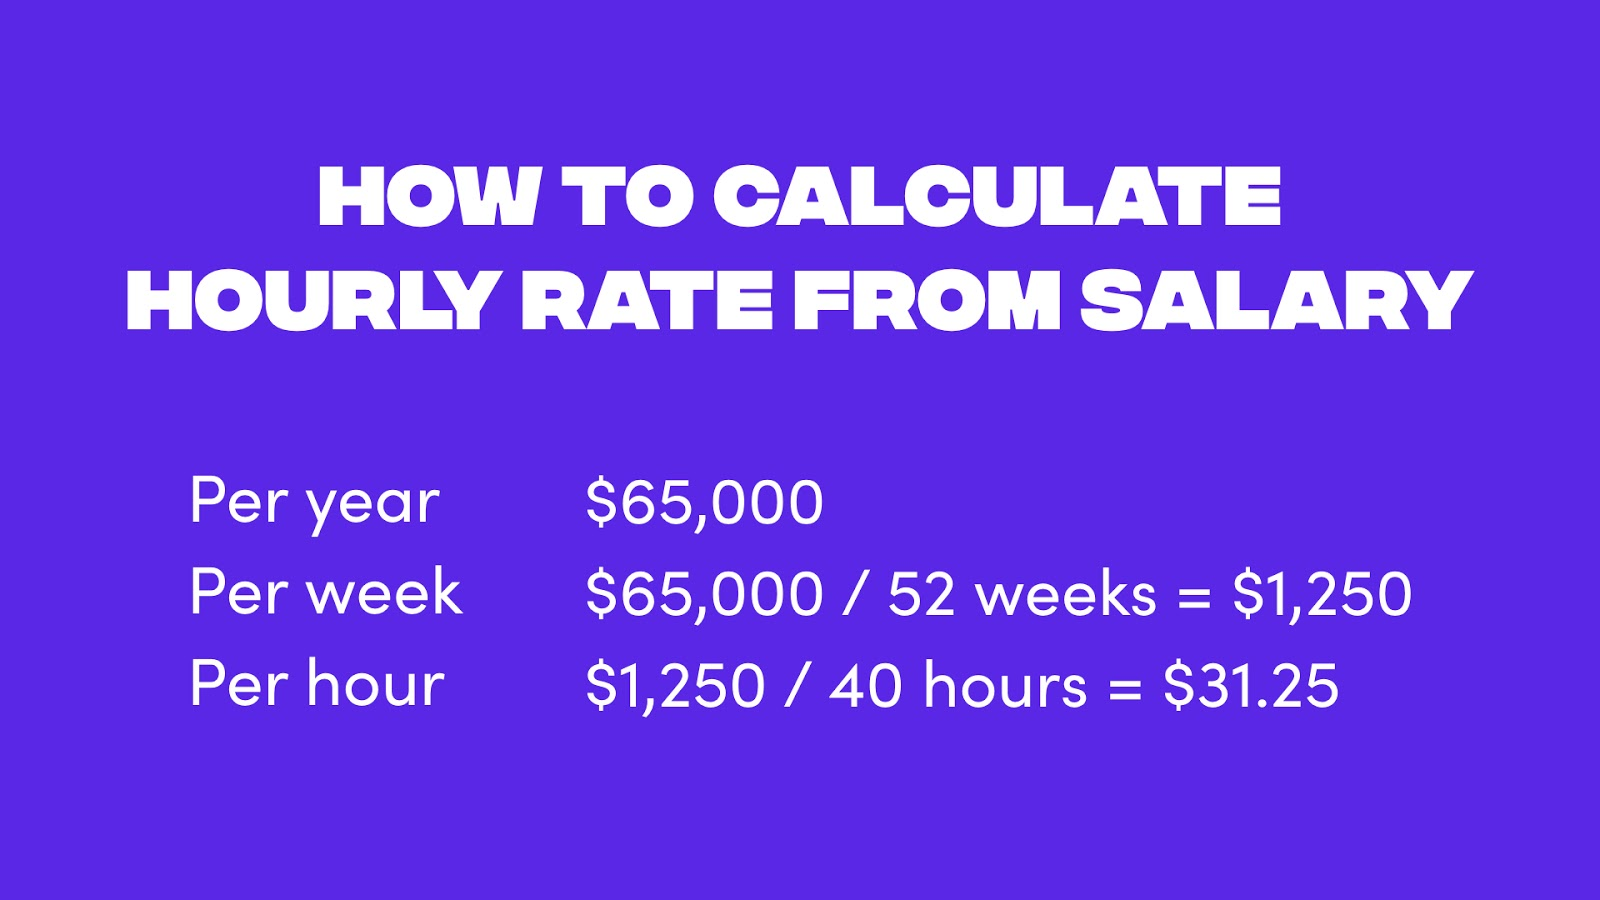 How to calculate hourly rate from salary